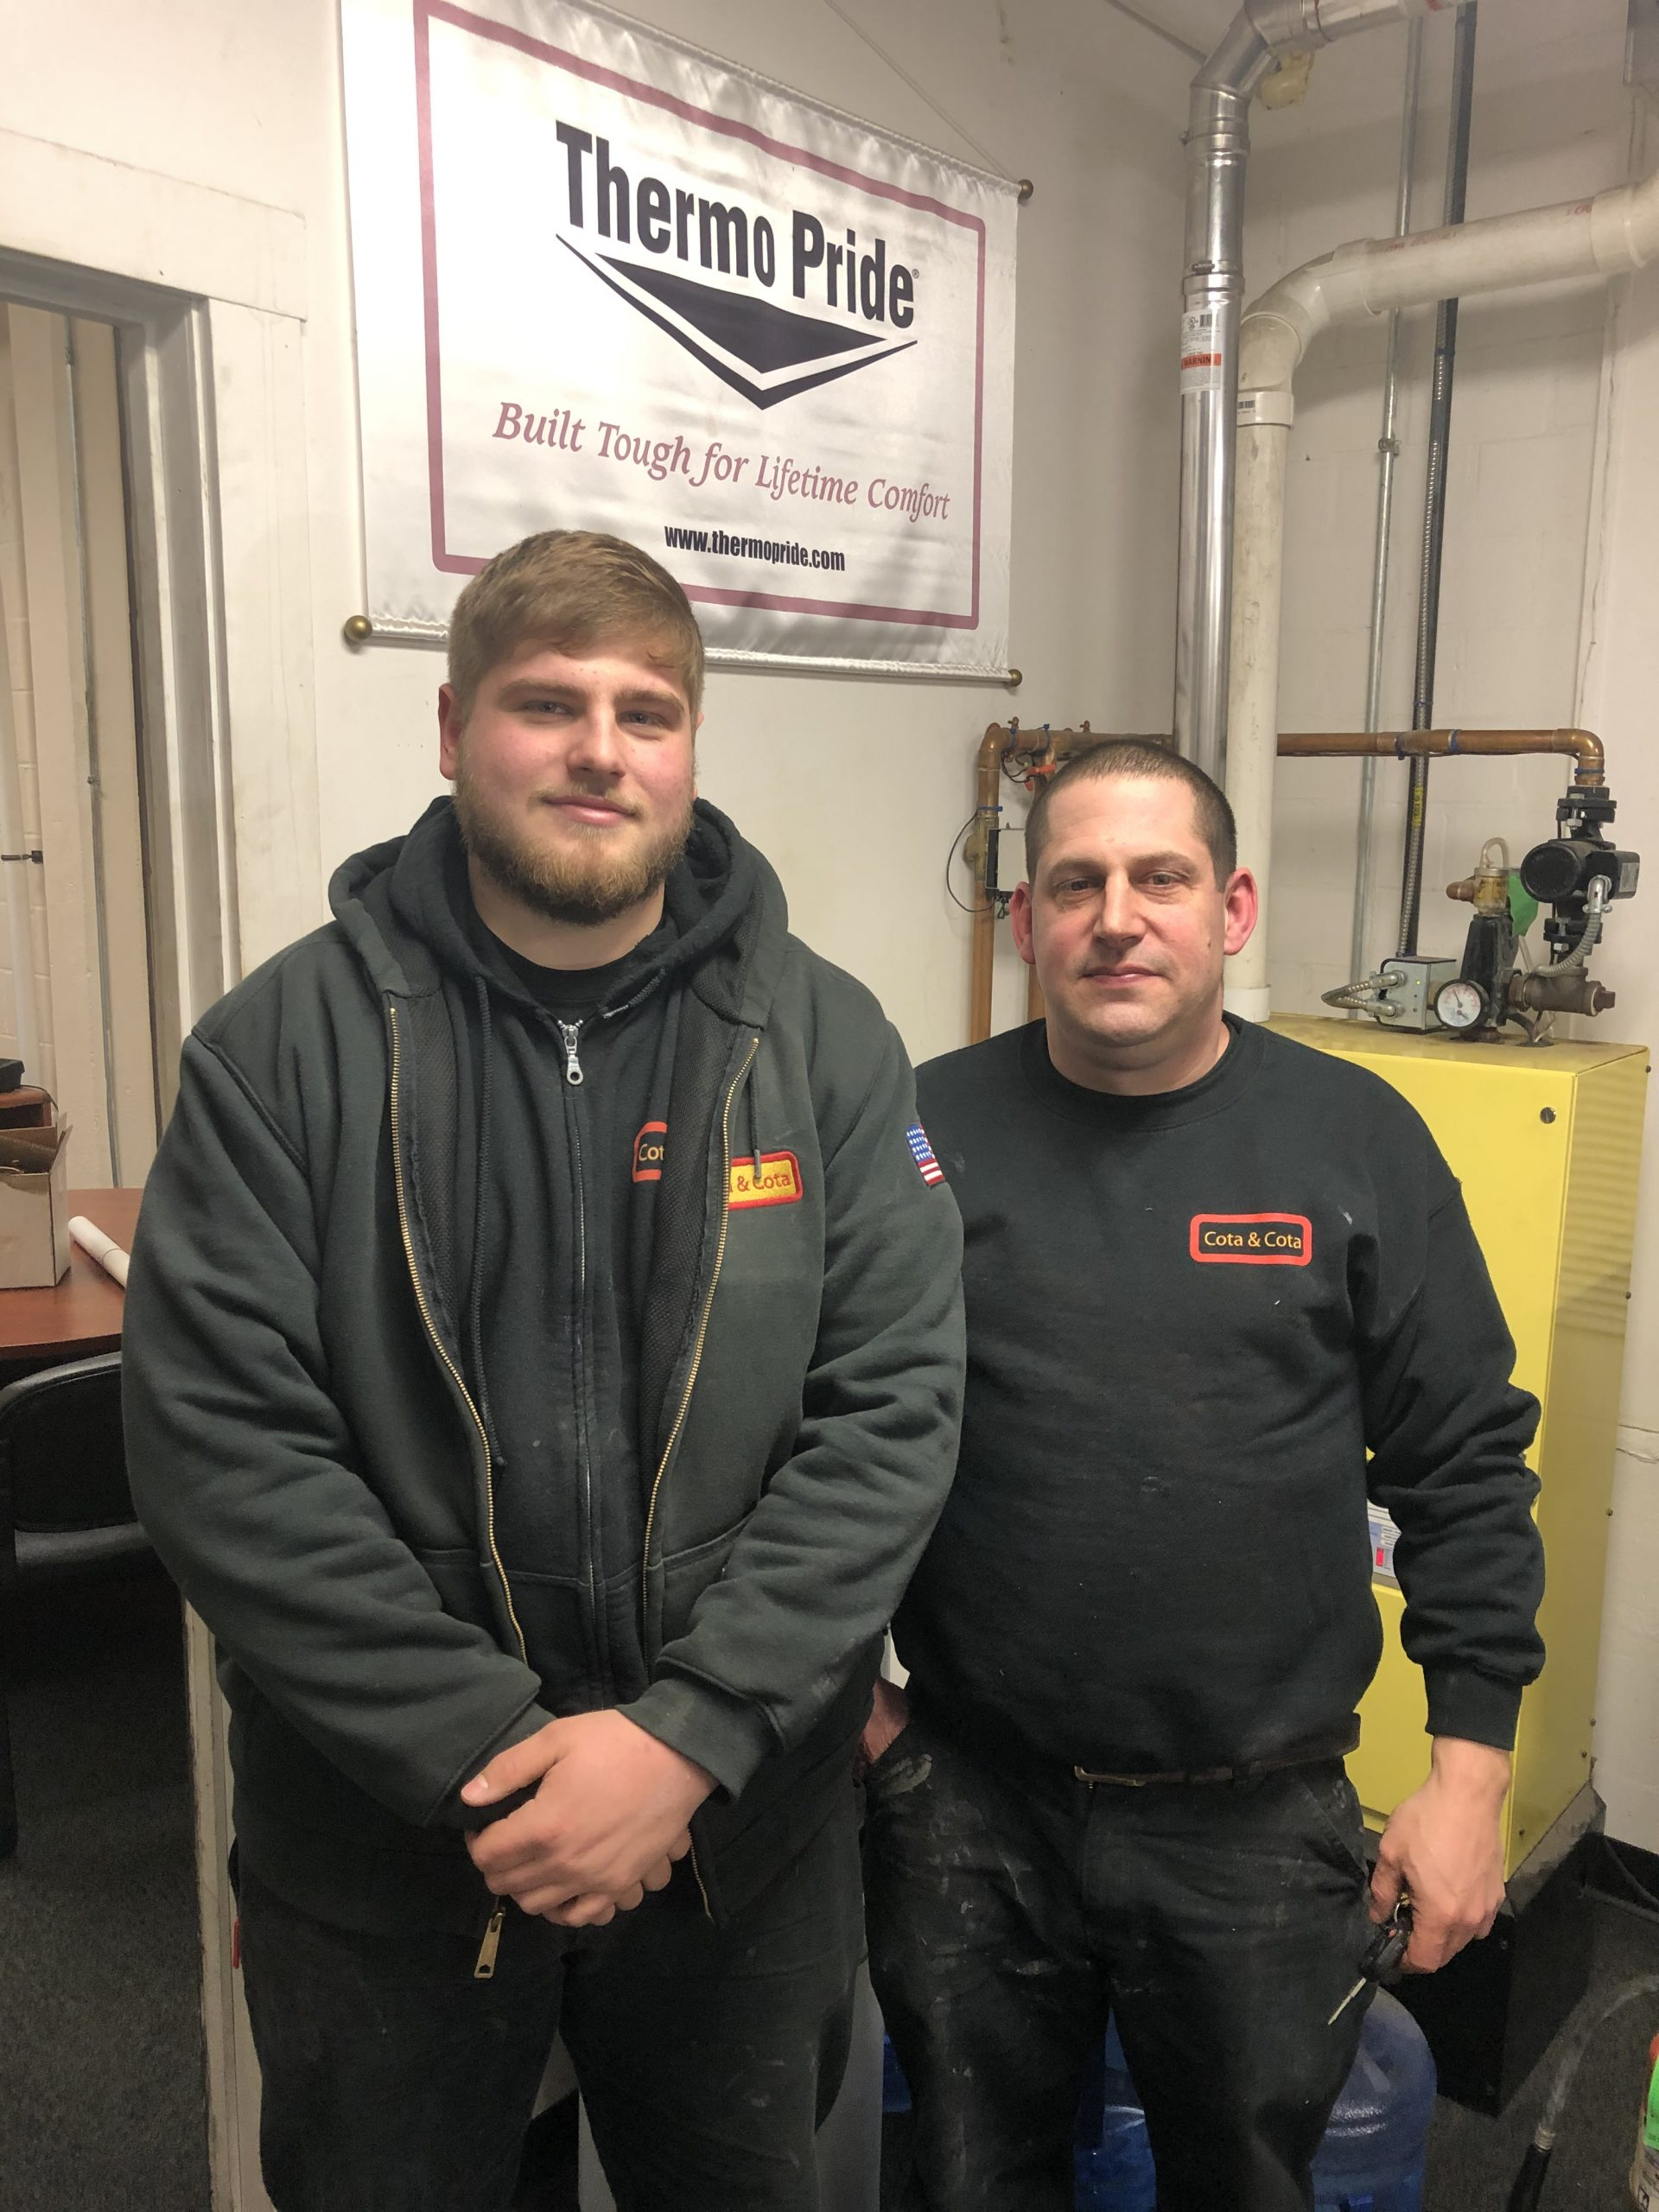 Apprentice Jared with master plumber Chris